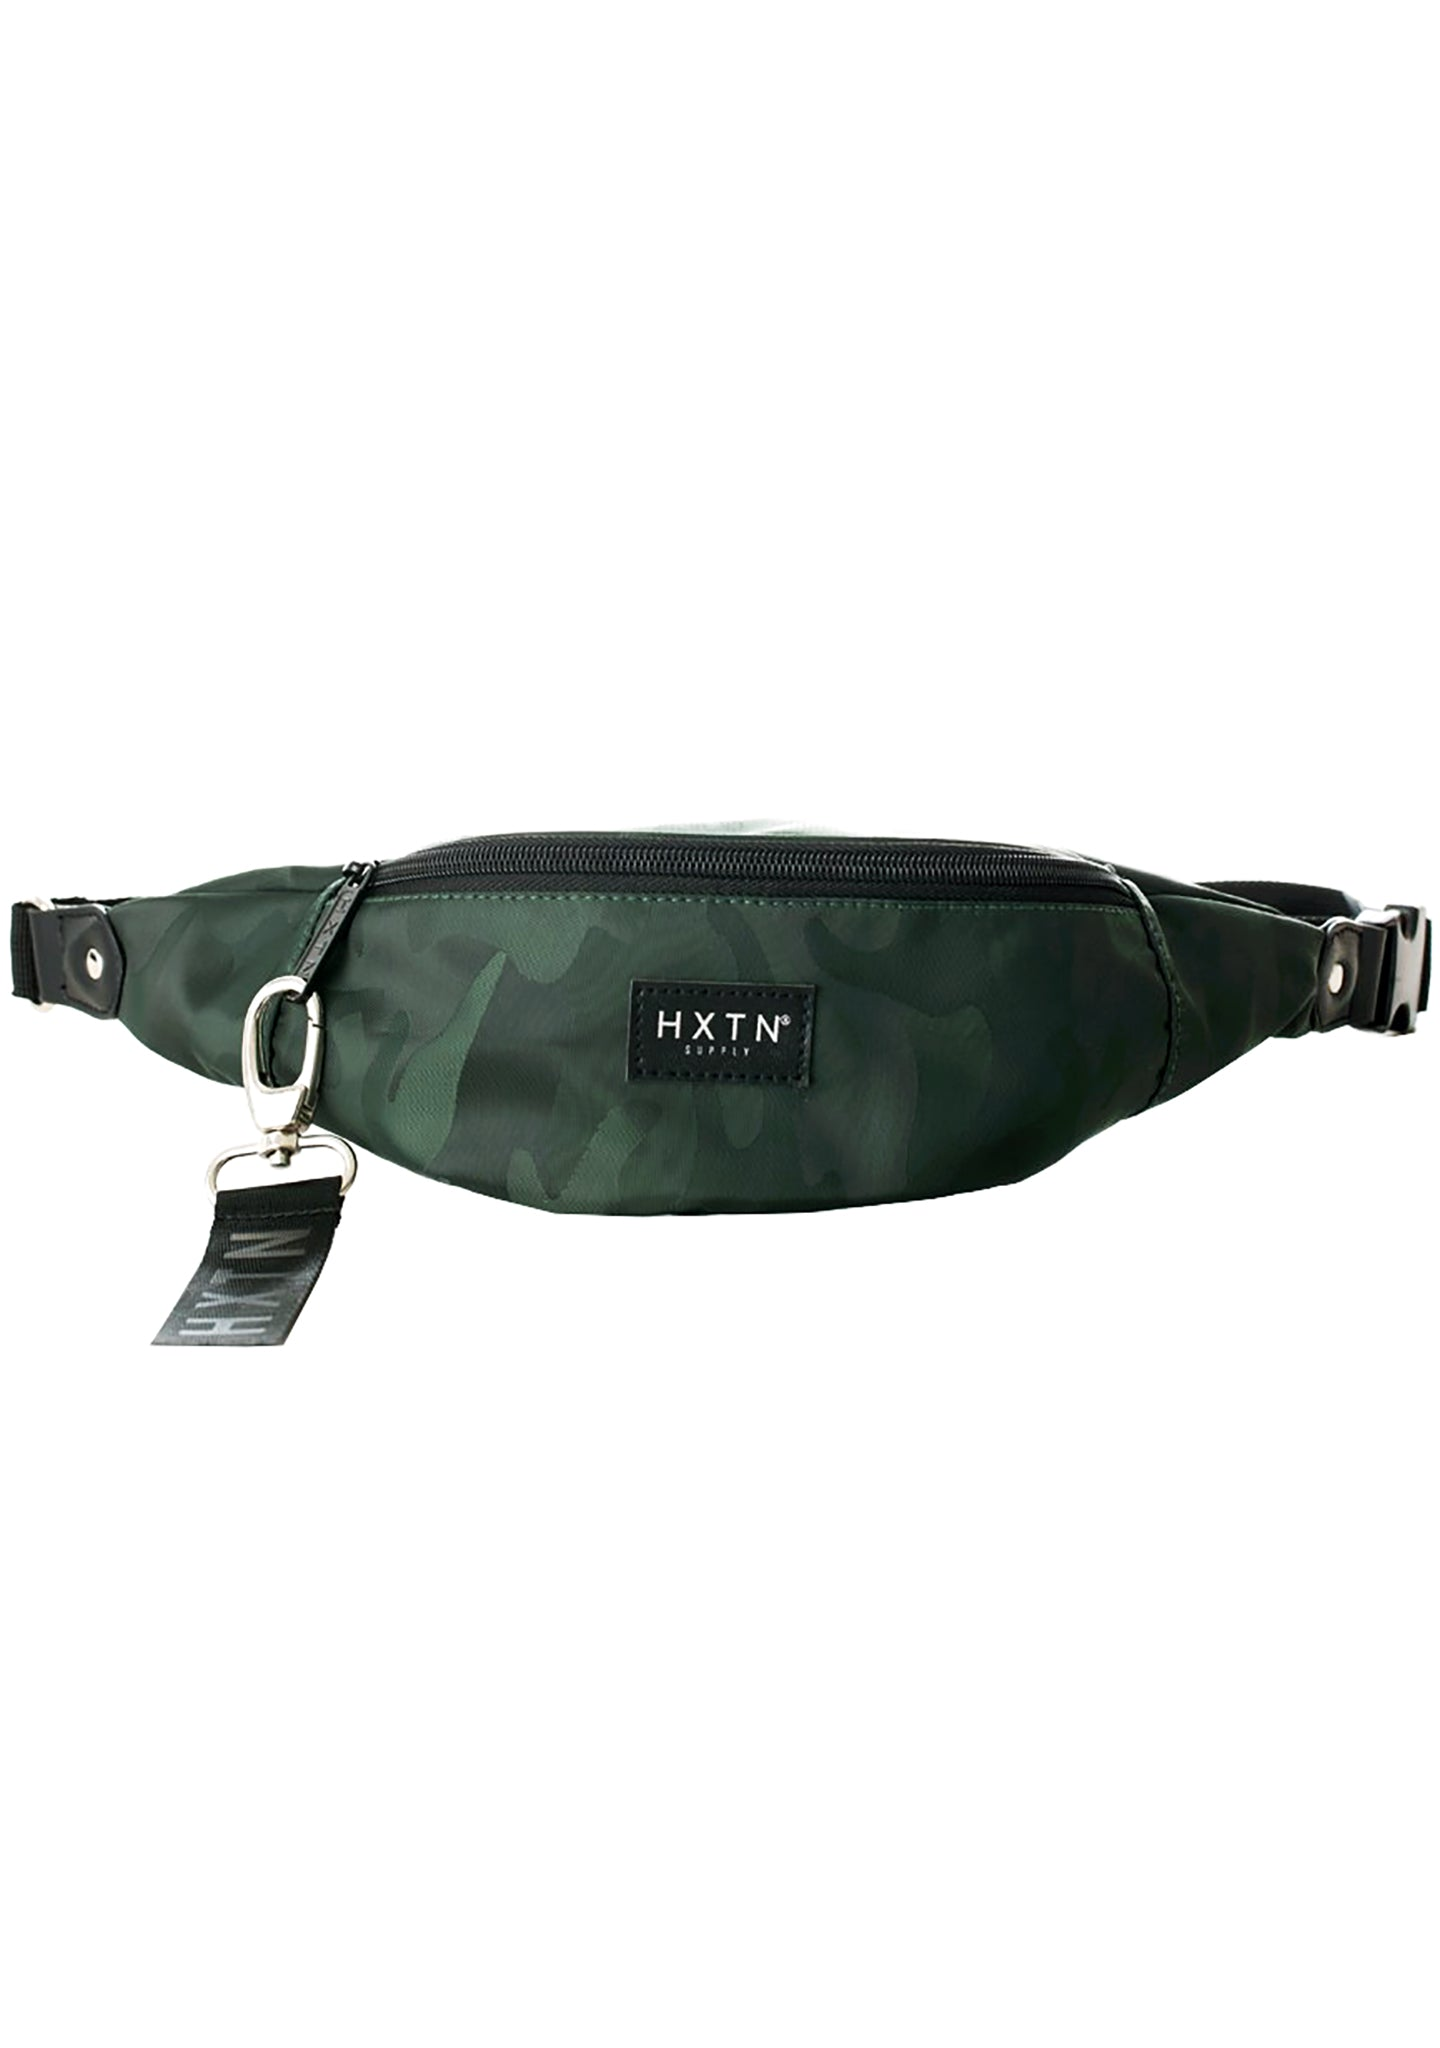 Prime One Bum Bag in Camo Army Green